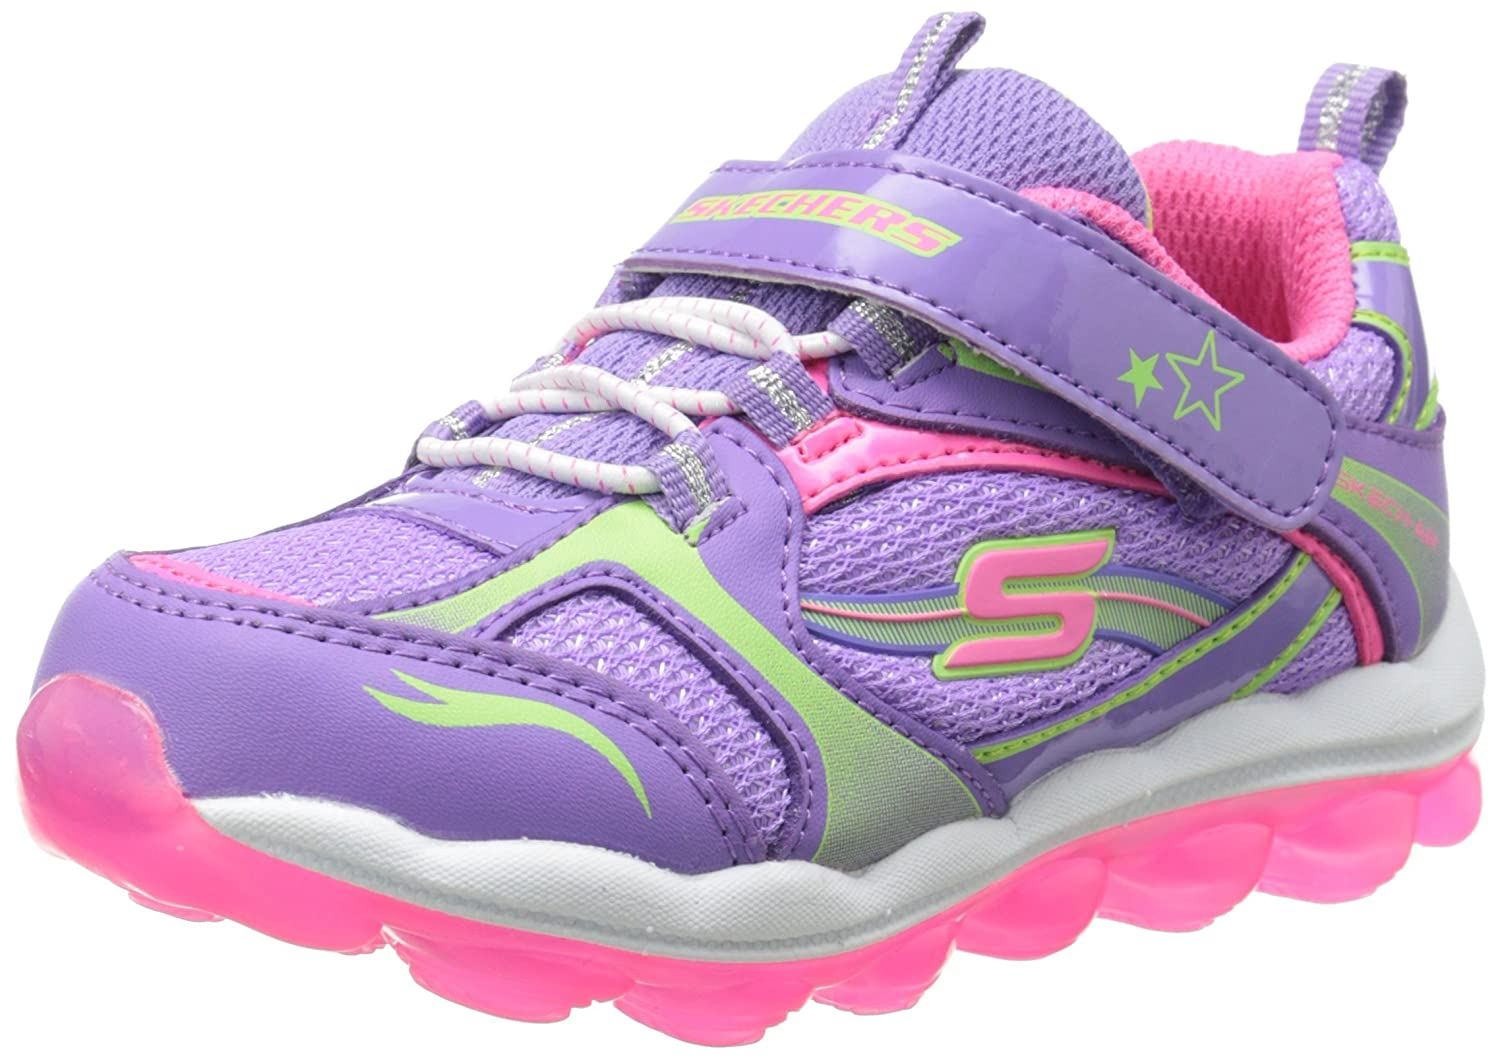 Lavender rose 38 EU Skechers Air-Bubble Beatz, Chaussures de Sport Fille